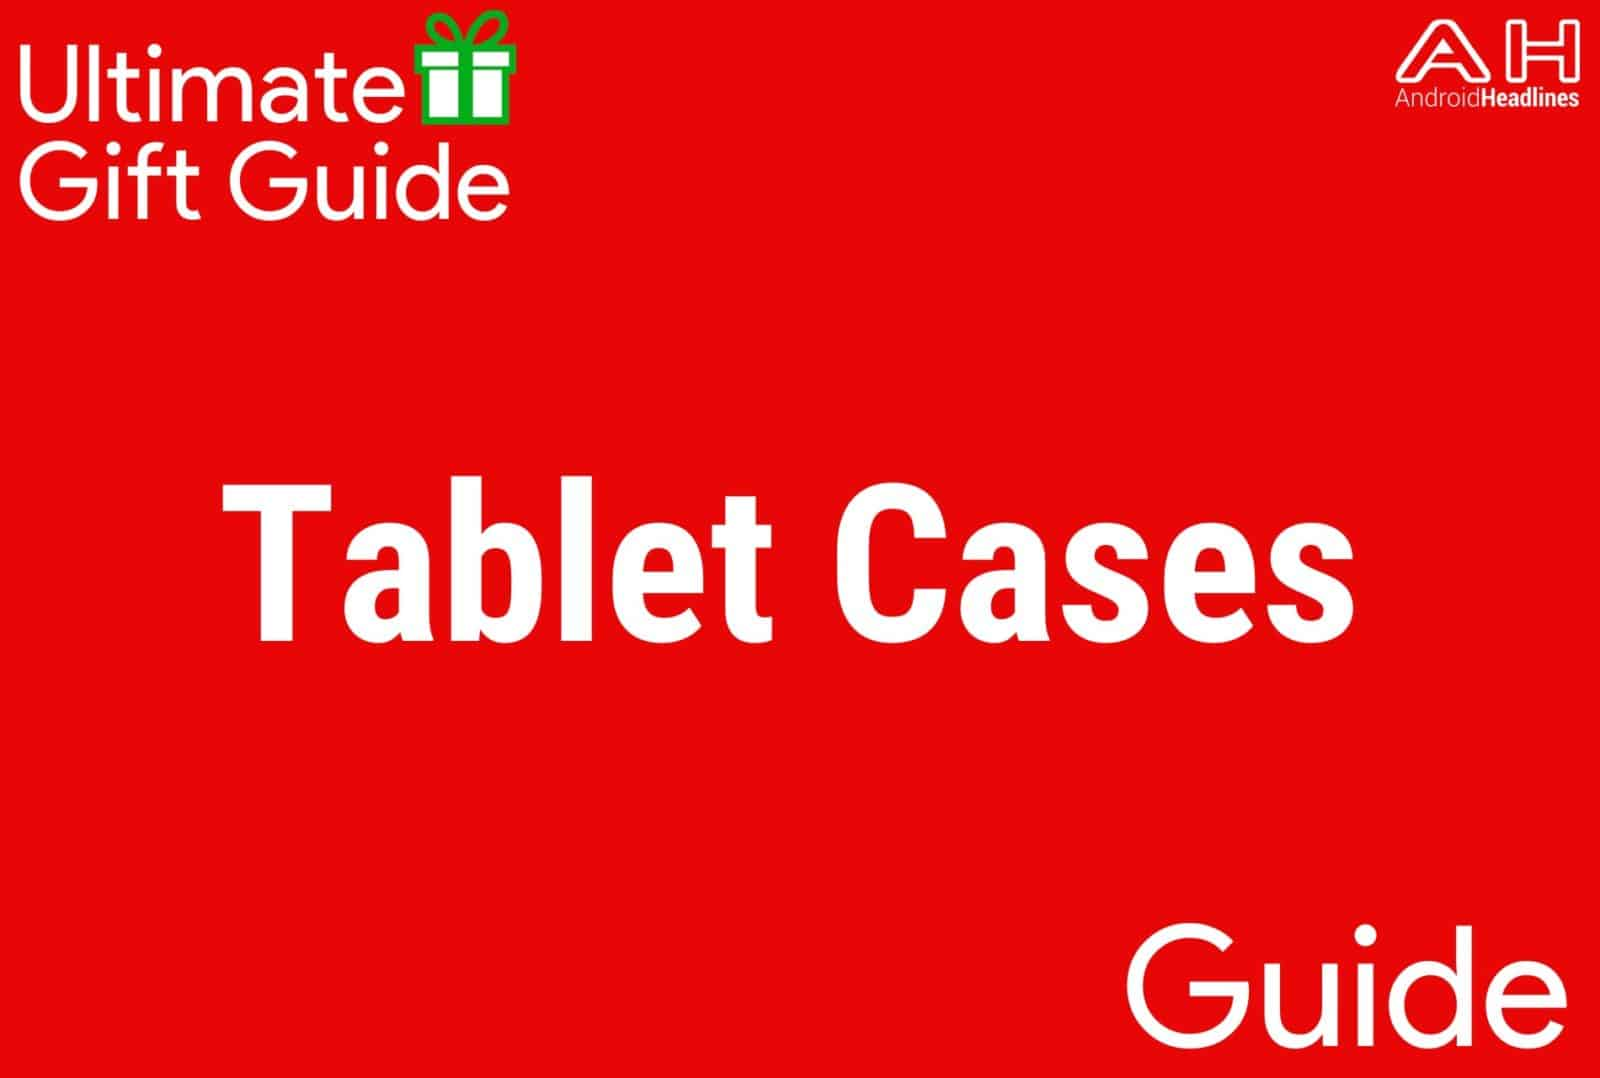 Tablet Cases - Gift Guide 2015